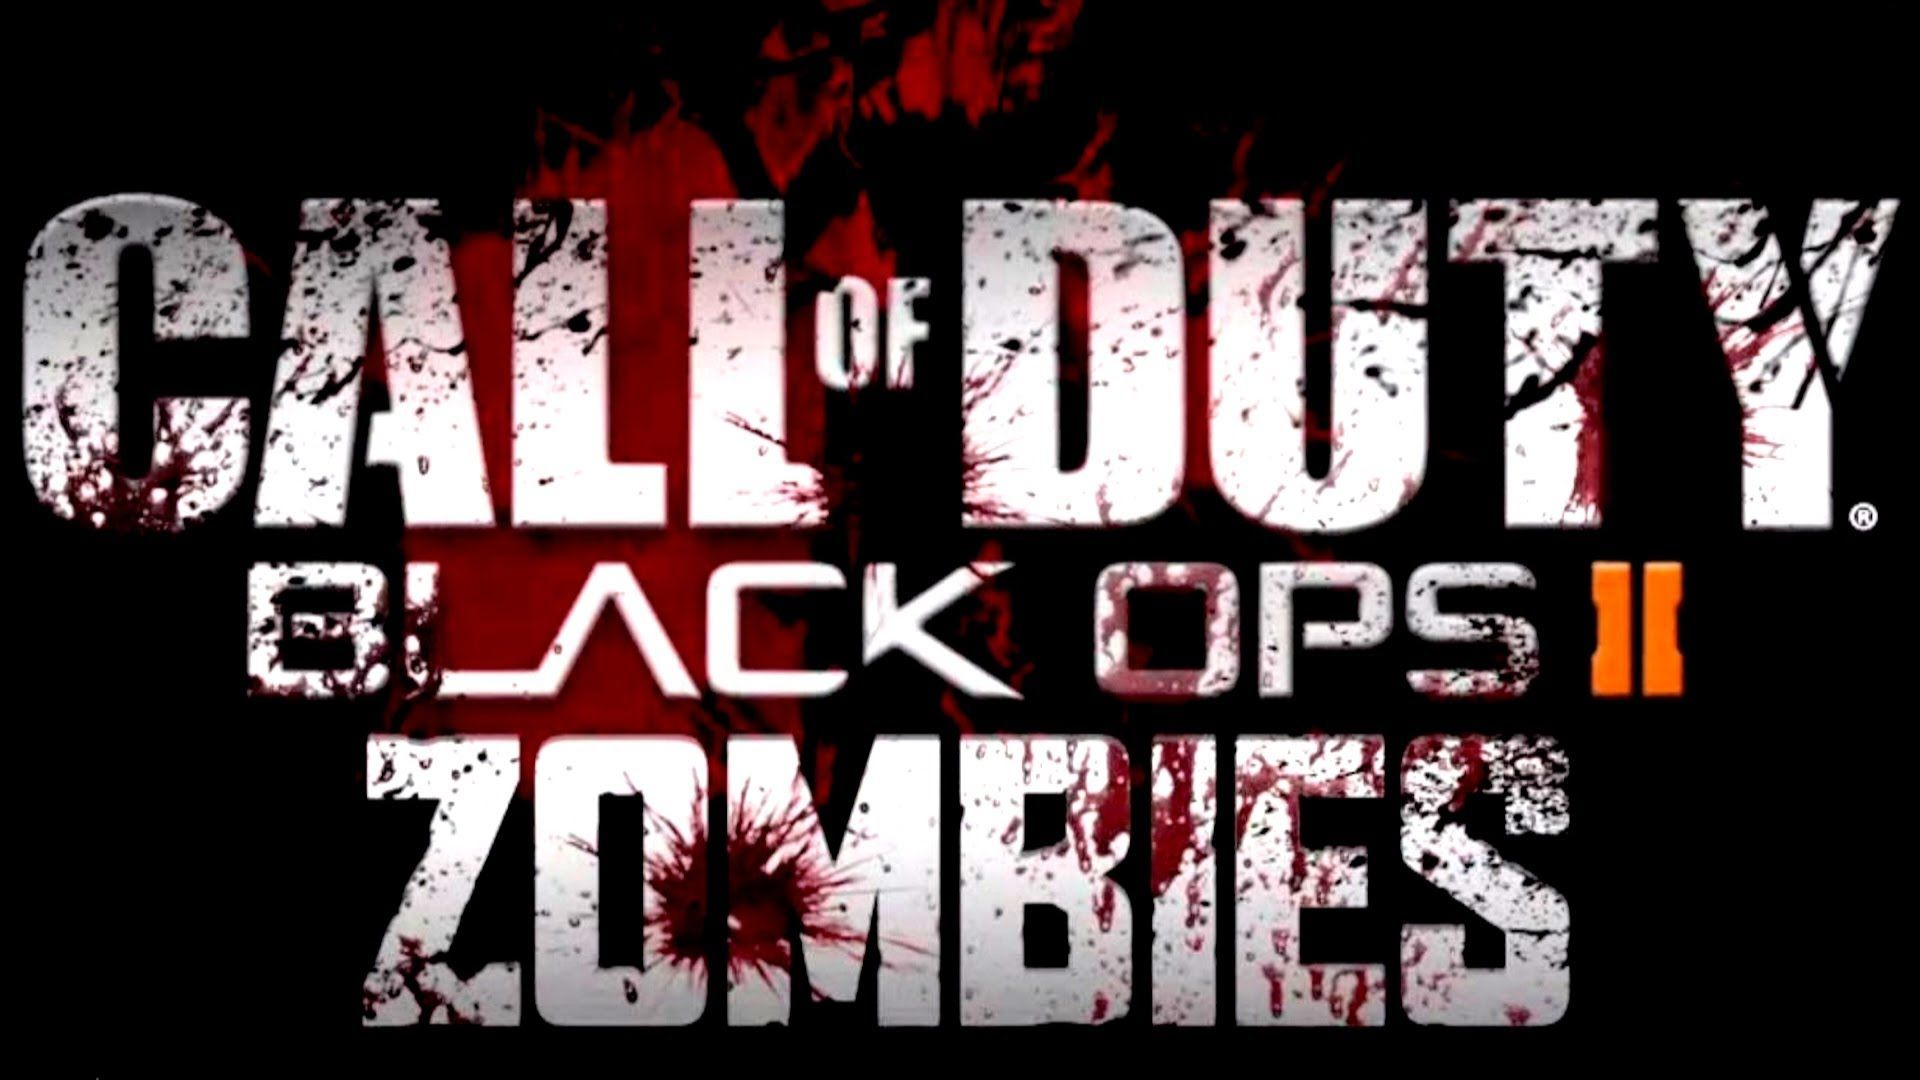 Call Of Duty Black Ops 2 Zombies Wallpapers Top Free Call Of Duty Black Ops 2 Zombies Backgrounds Wallpaperaccess